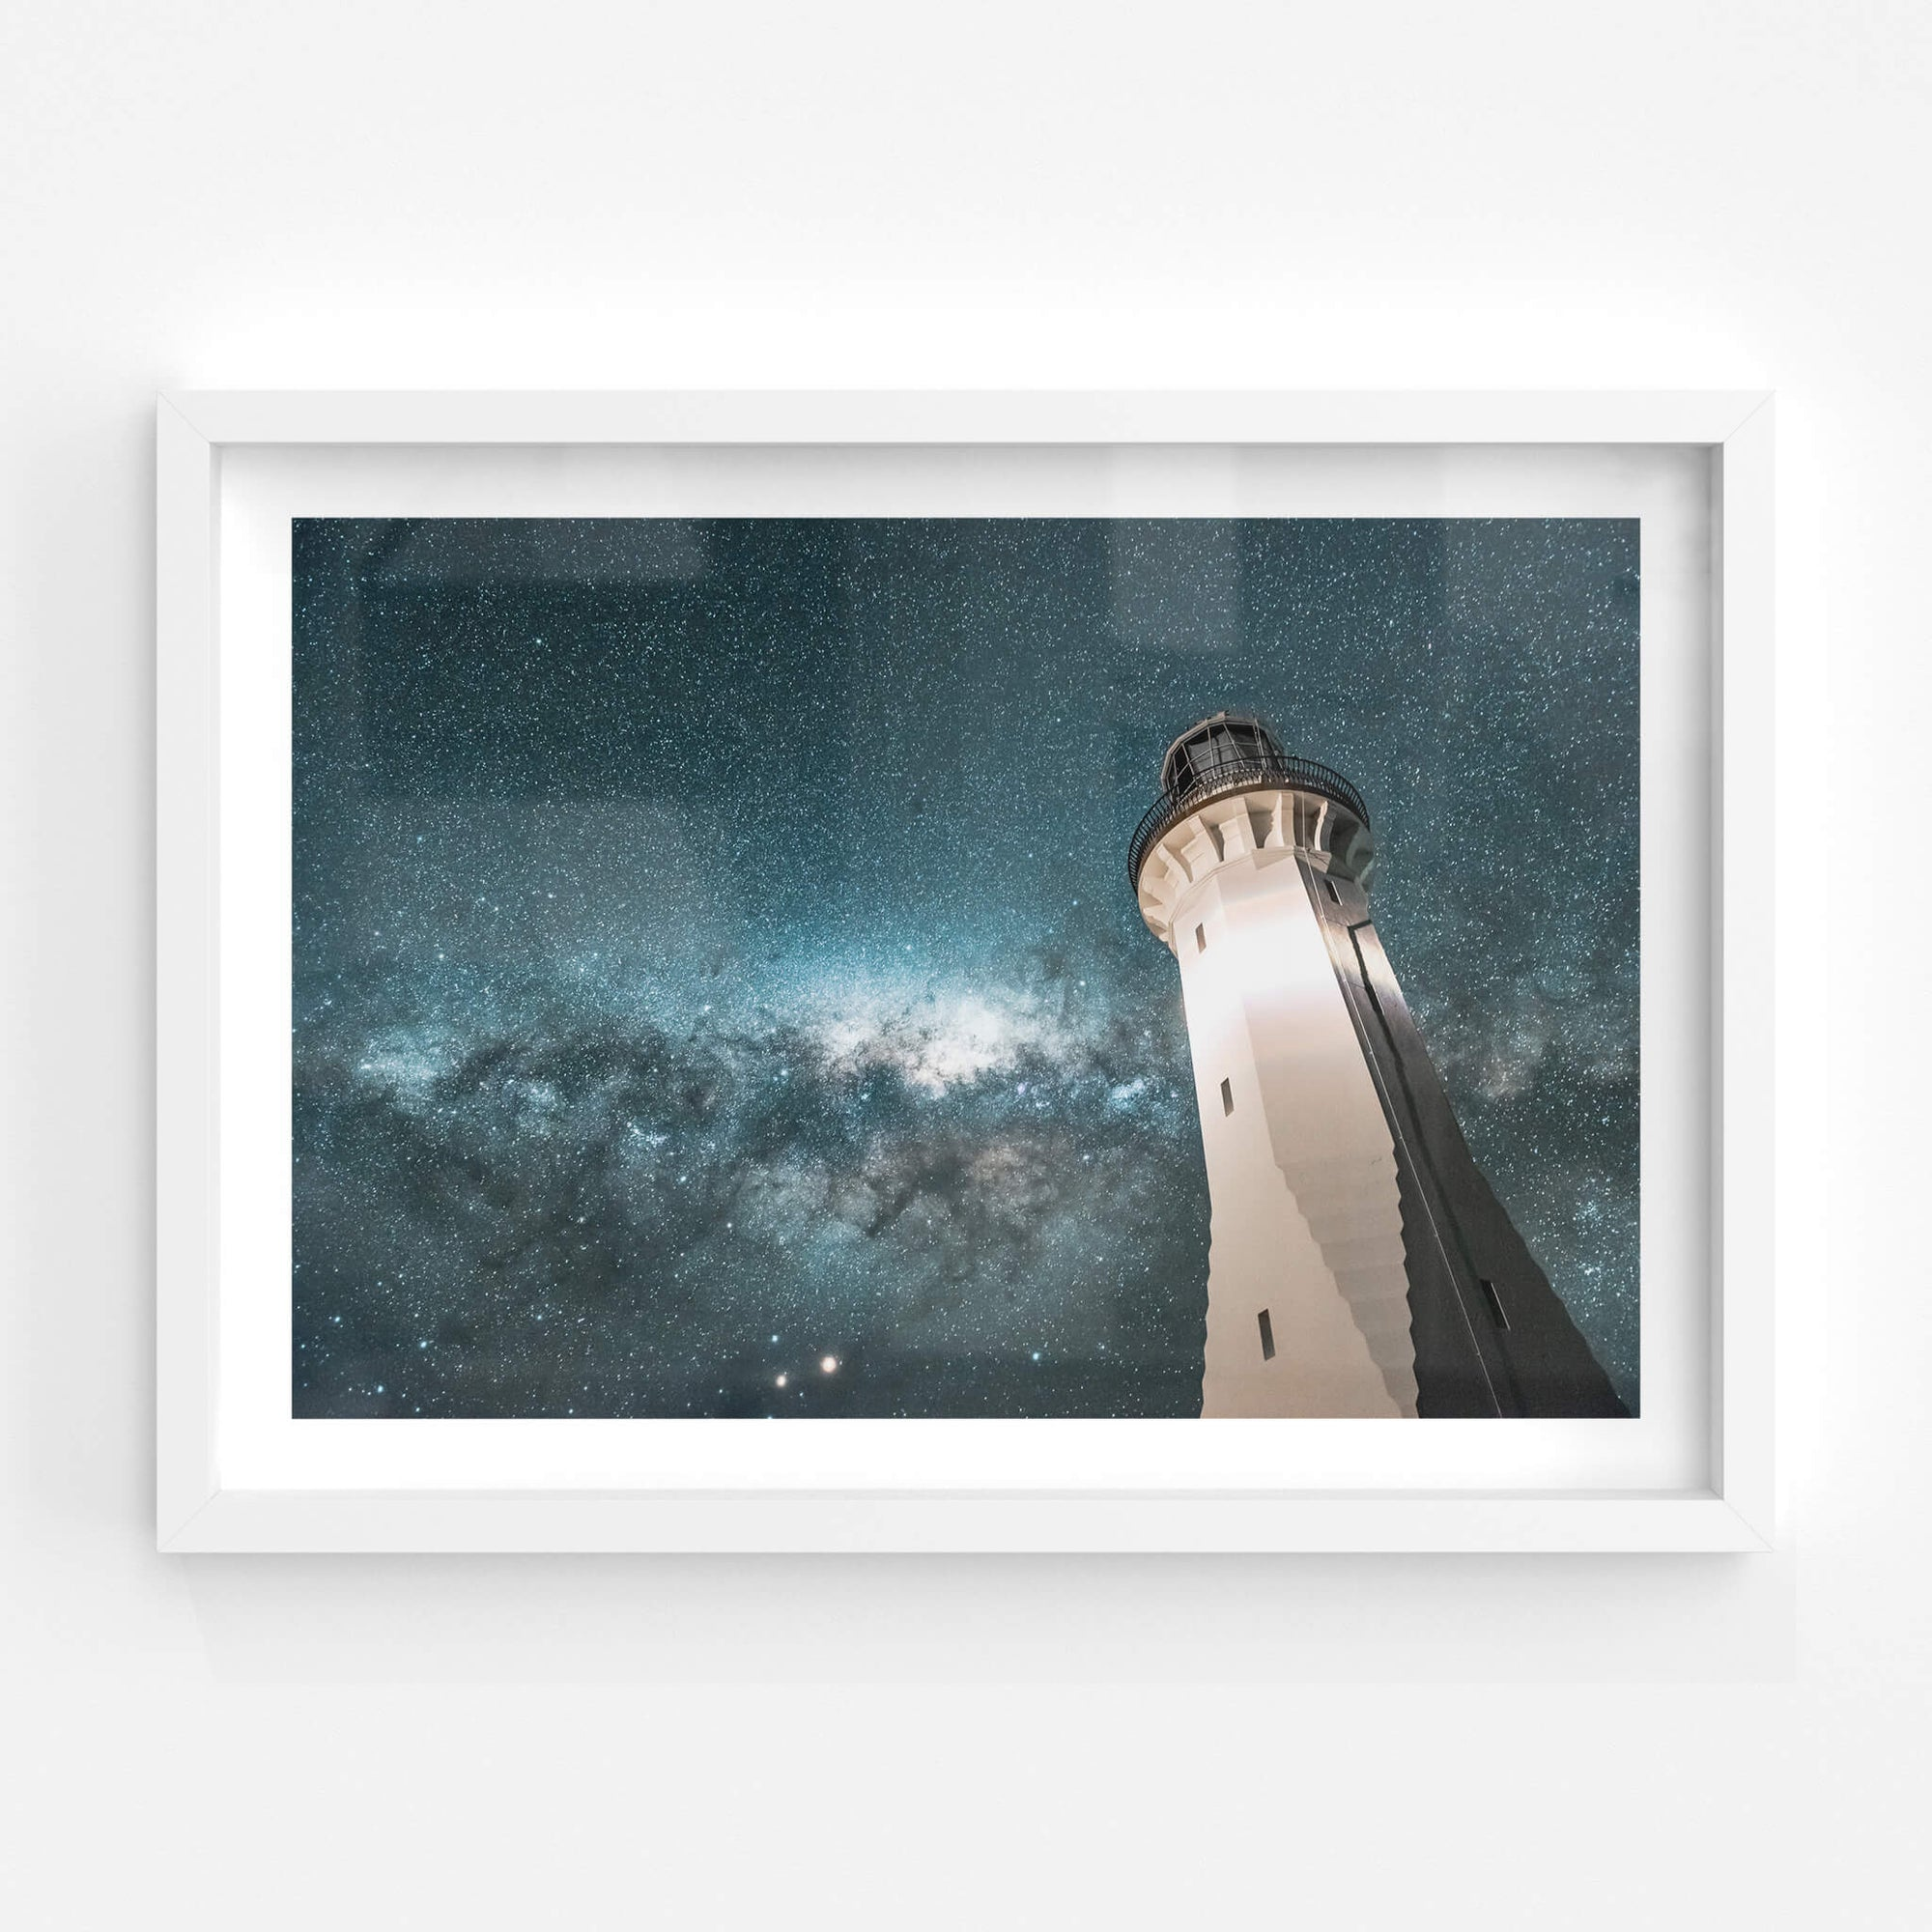 Green Cape Lighthouse | Landscapes Fine Art Print - Lost Collective Shop